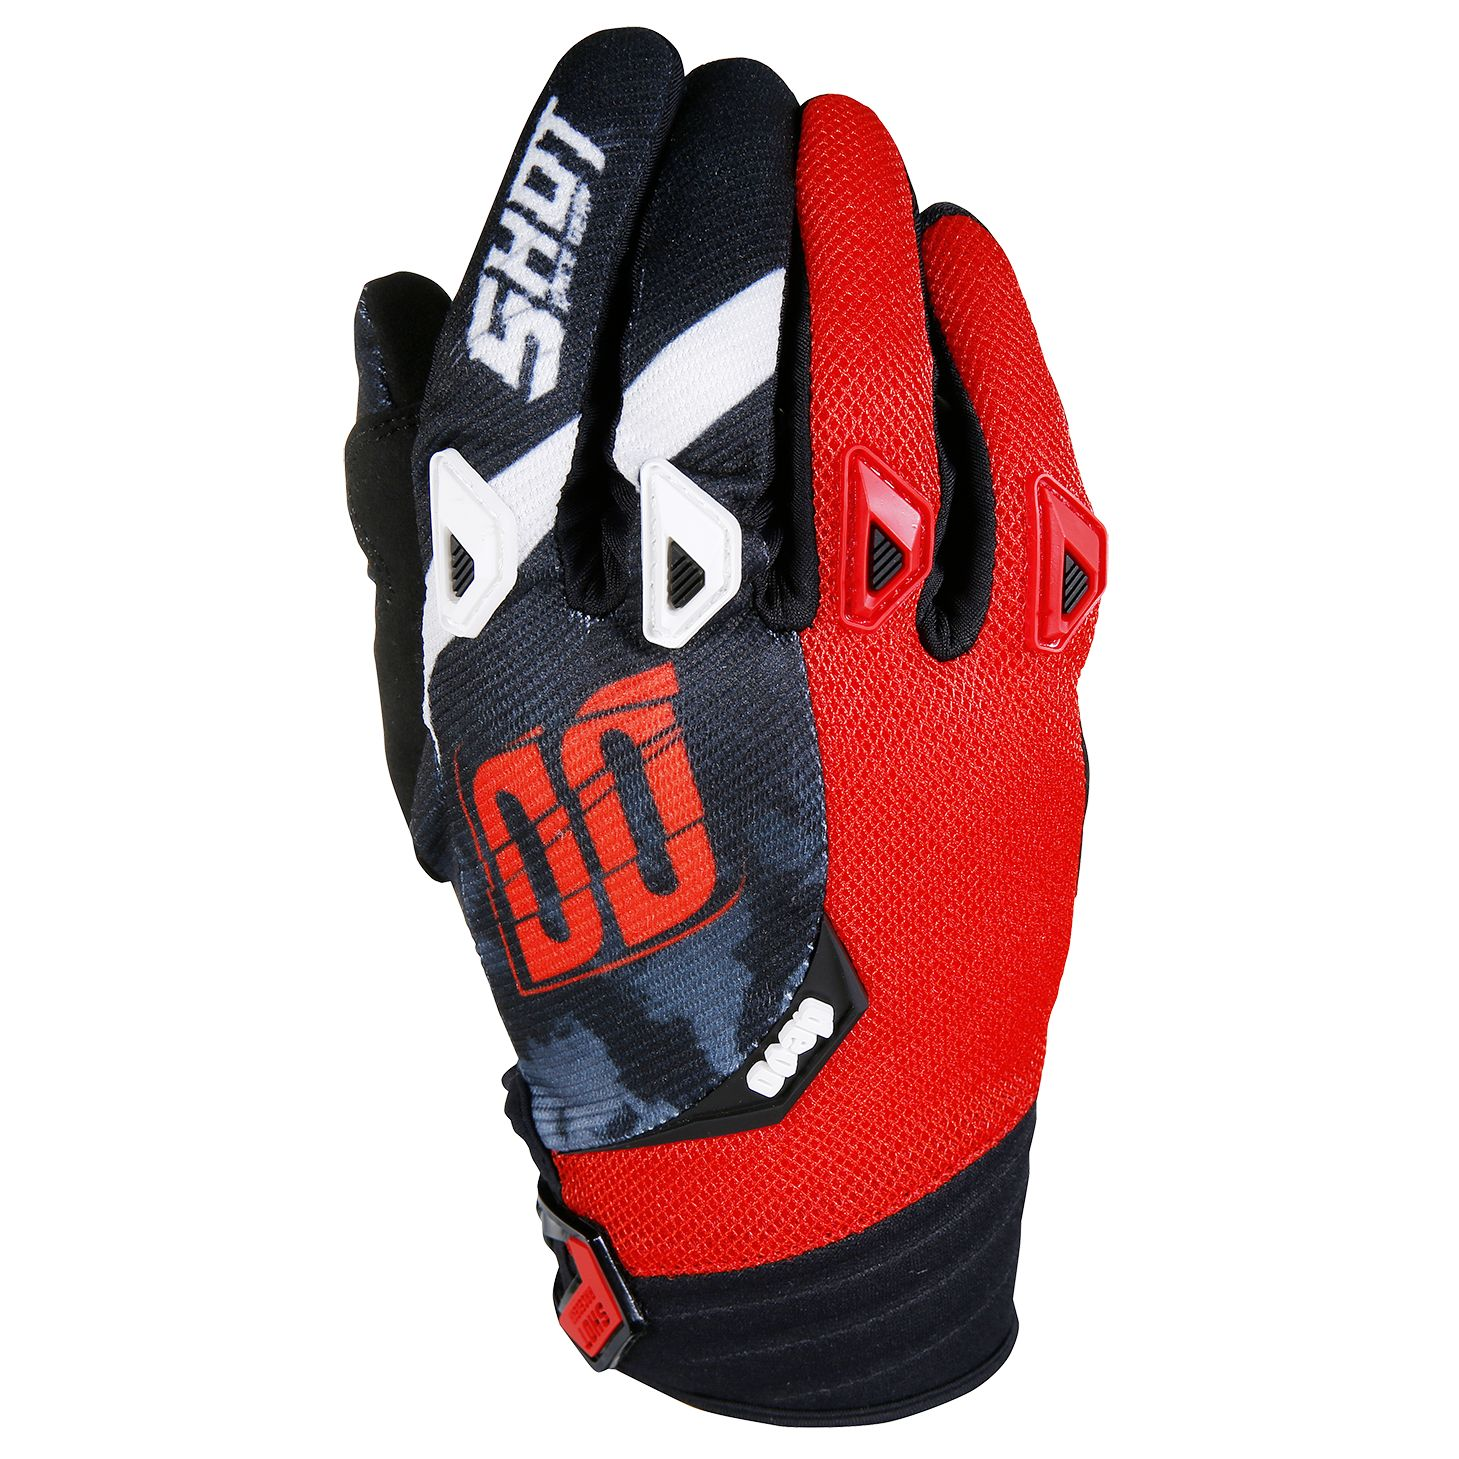 Gants cross Shot destockage DEVO SQUAD ROUGE  2017